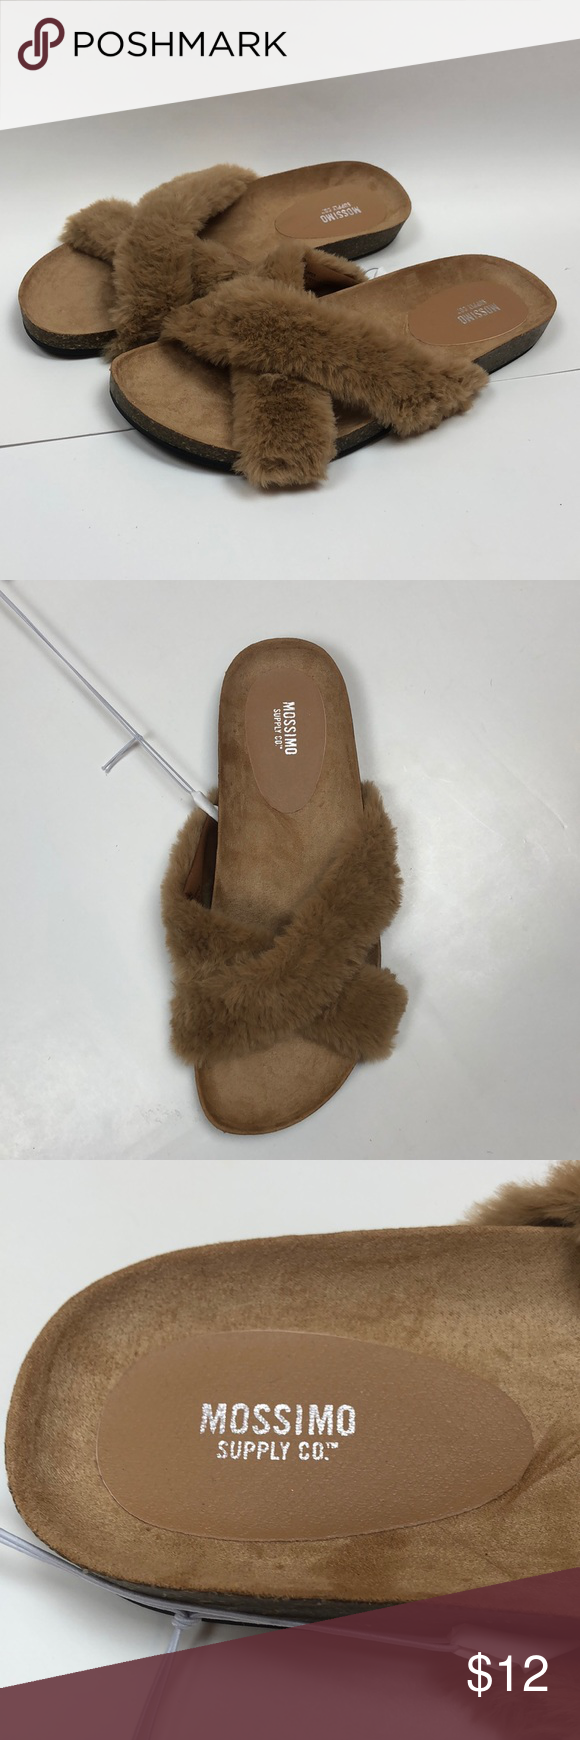 e2daae36f7b2d8 Mossimo Bella Cross Band Faux Fur Slide Sandals Mossimo Supply Co. Bella  Cross Band Faux Fur Footbed Slide Sandals Tan New with tags Pictures above  is a ...